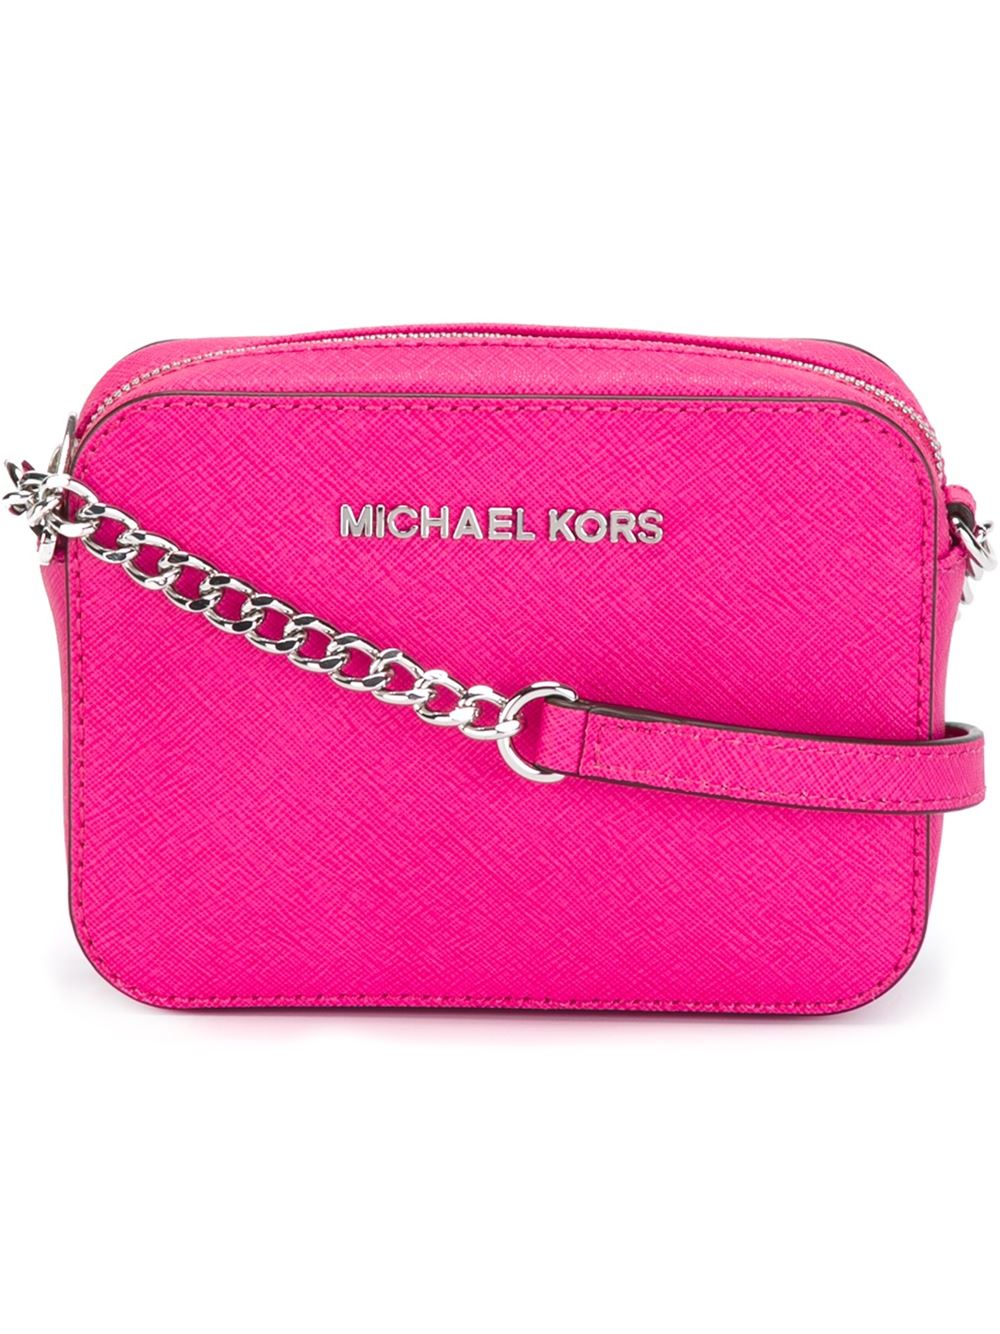 michael michael kors pink purple mini jet set crossbody bag pink. Black Bedroom Furniture Sets. Home Design Ideas